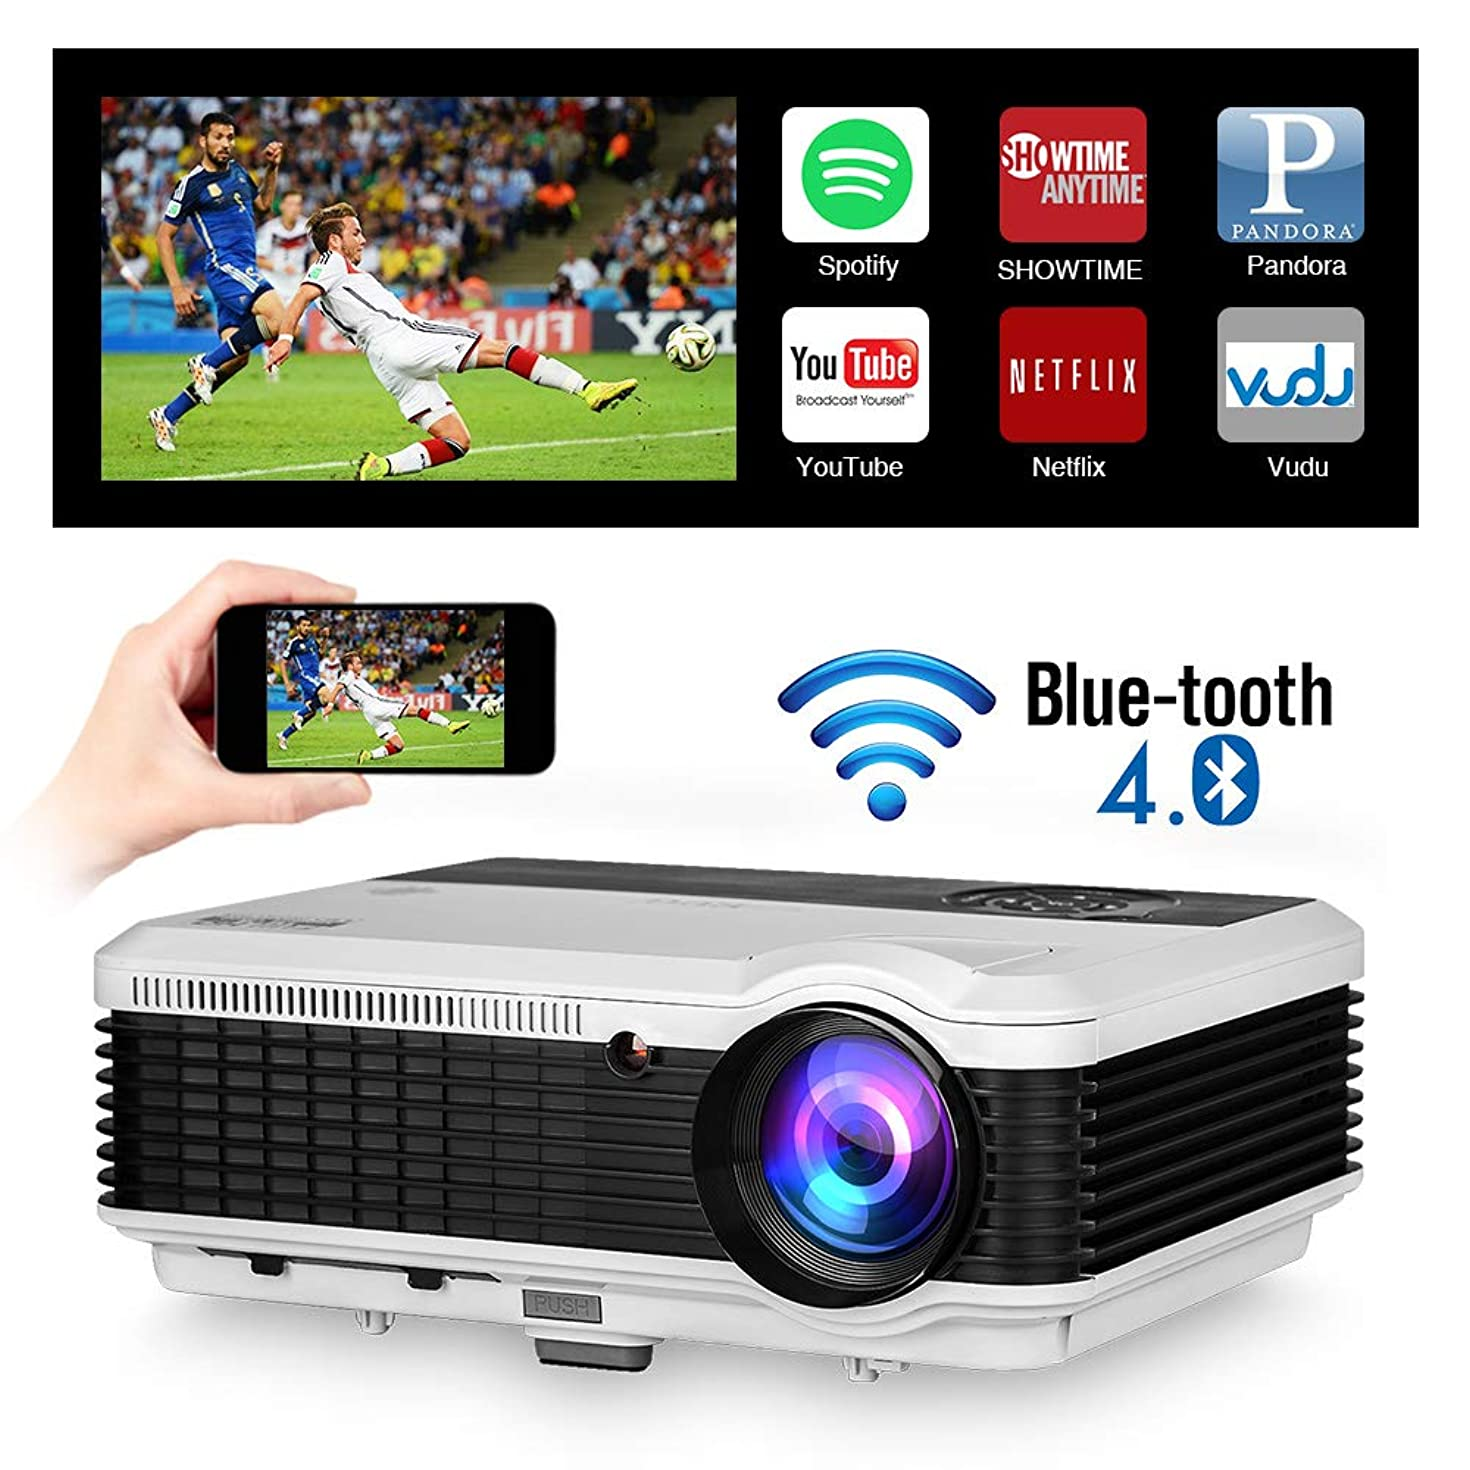 WXGA HD Wifi LED Home Cinema Theater Outdoor Movie Projector with HDMI USB Input Bluetooth LCD Smart Android Wireless Video Projector 1080P 720P for Laptop DVD TV XBOX Smartphone Slides Photo Game